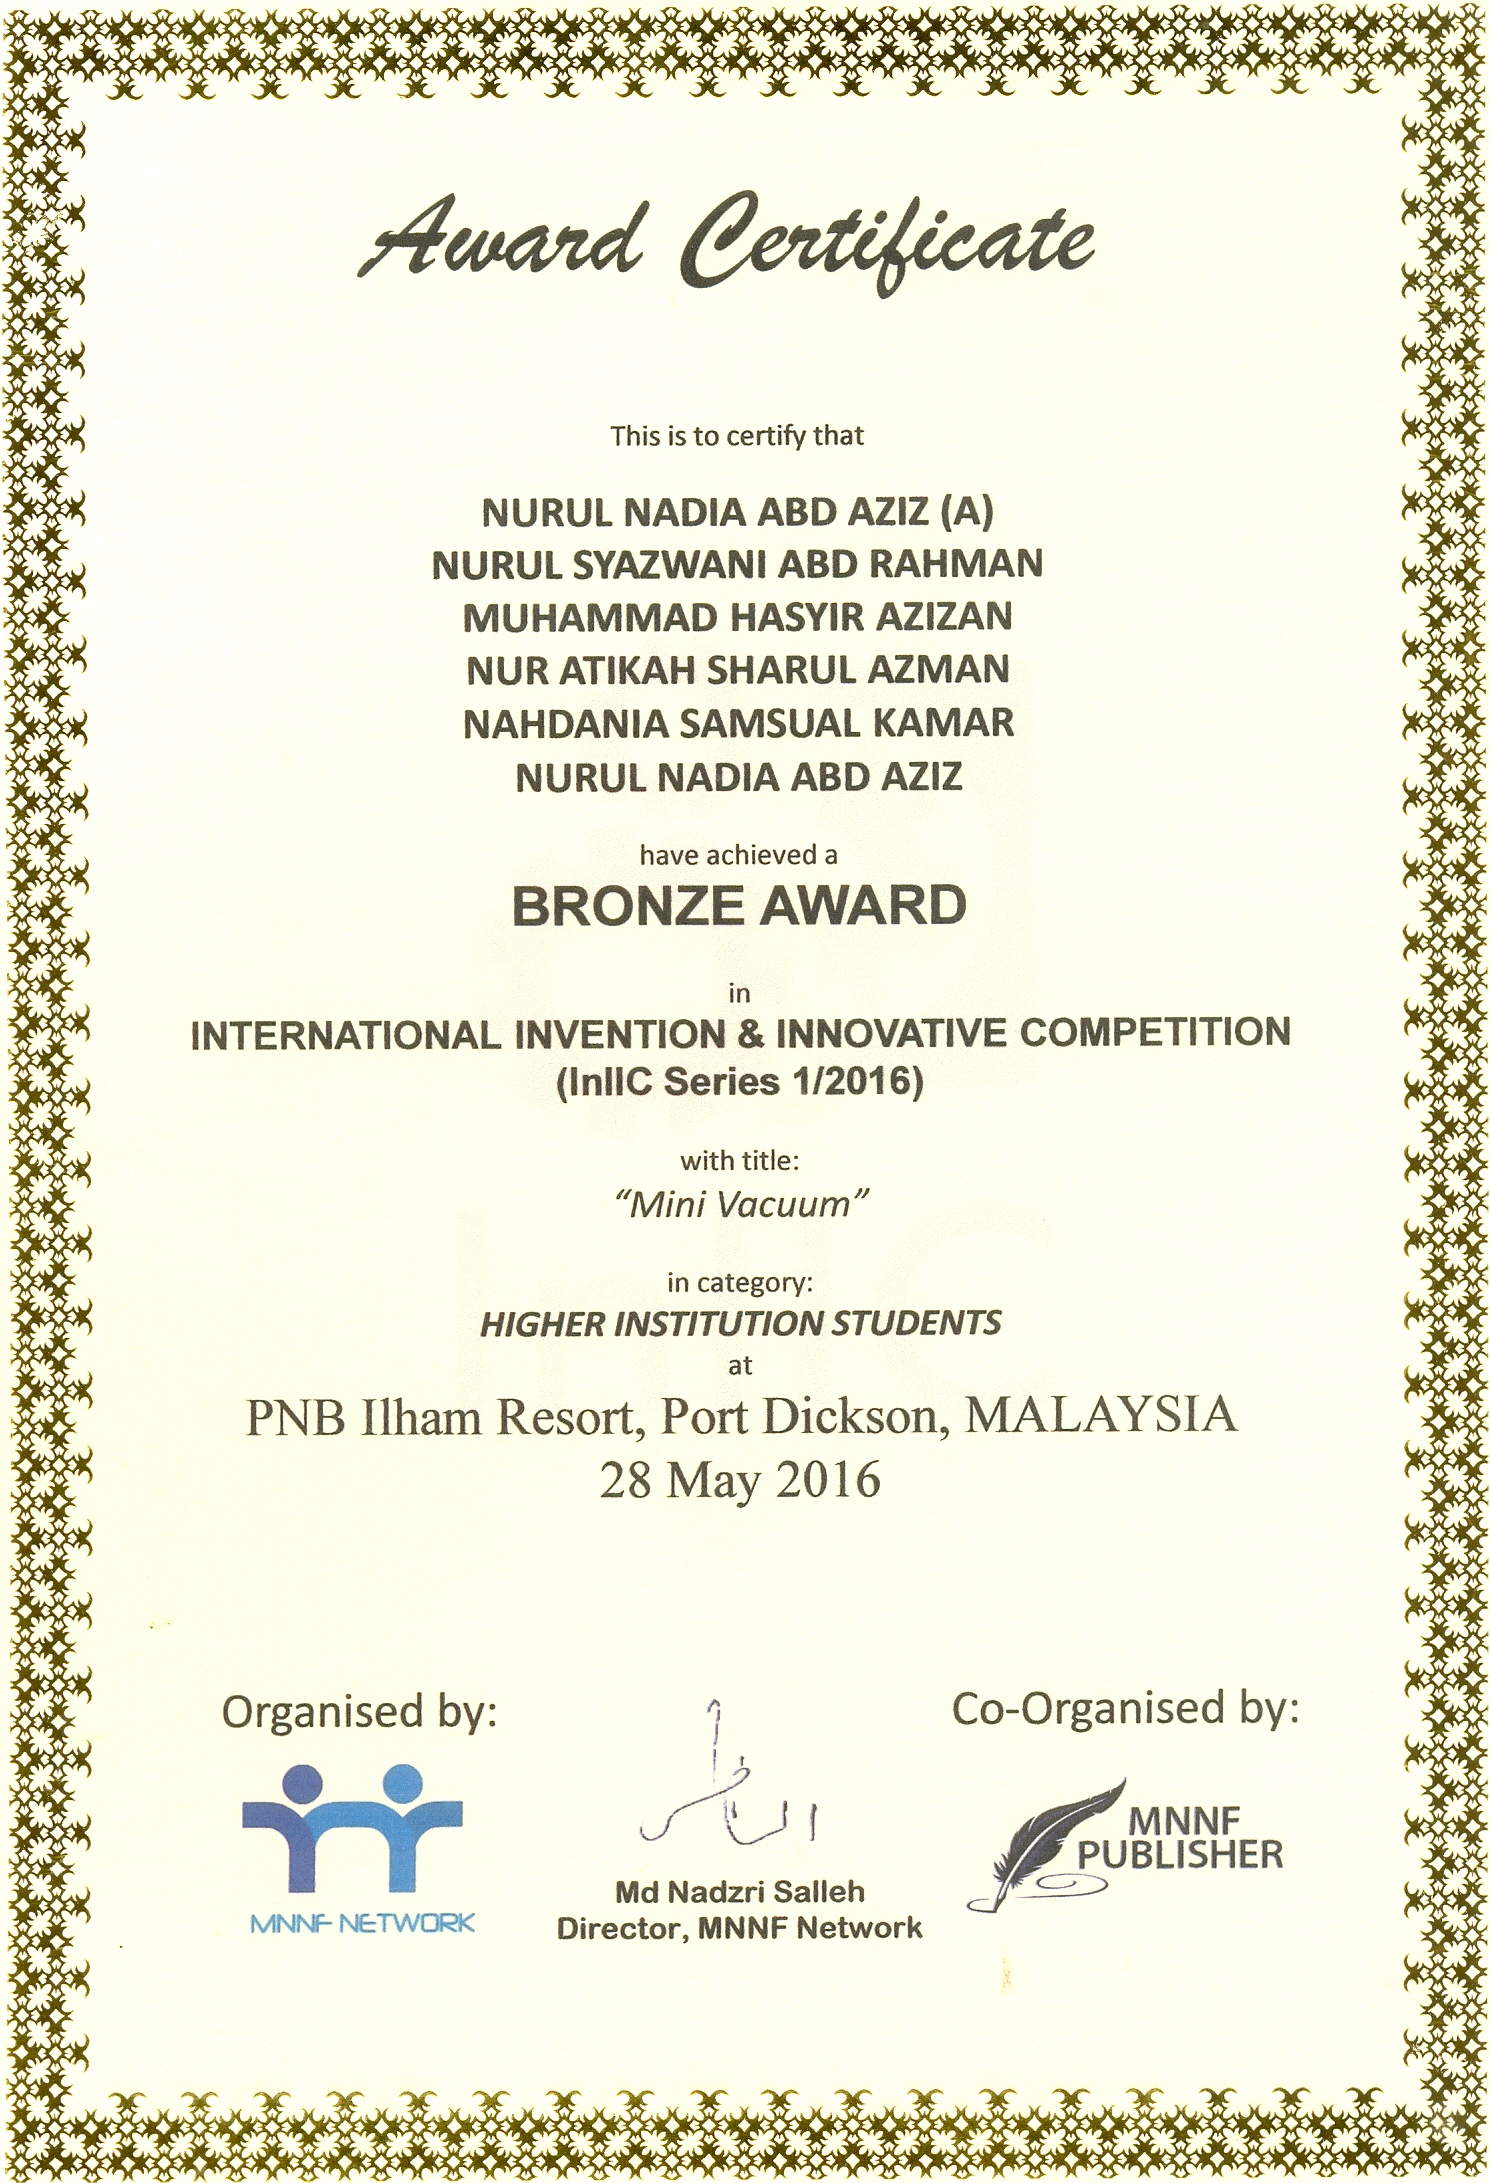 iniic_bronze-award0001